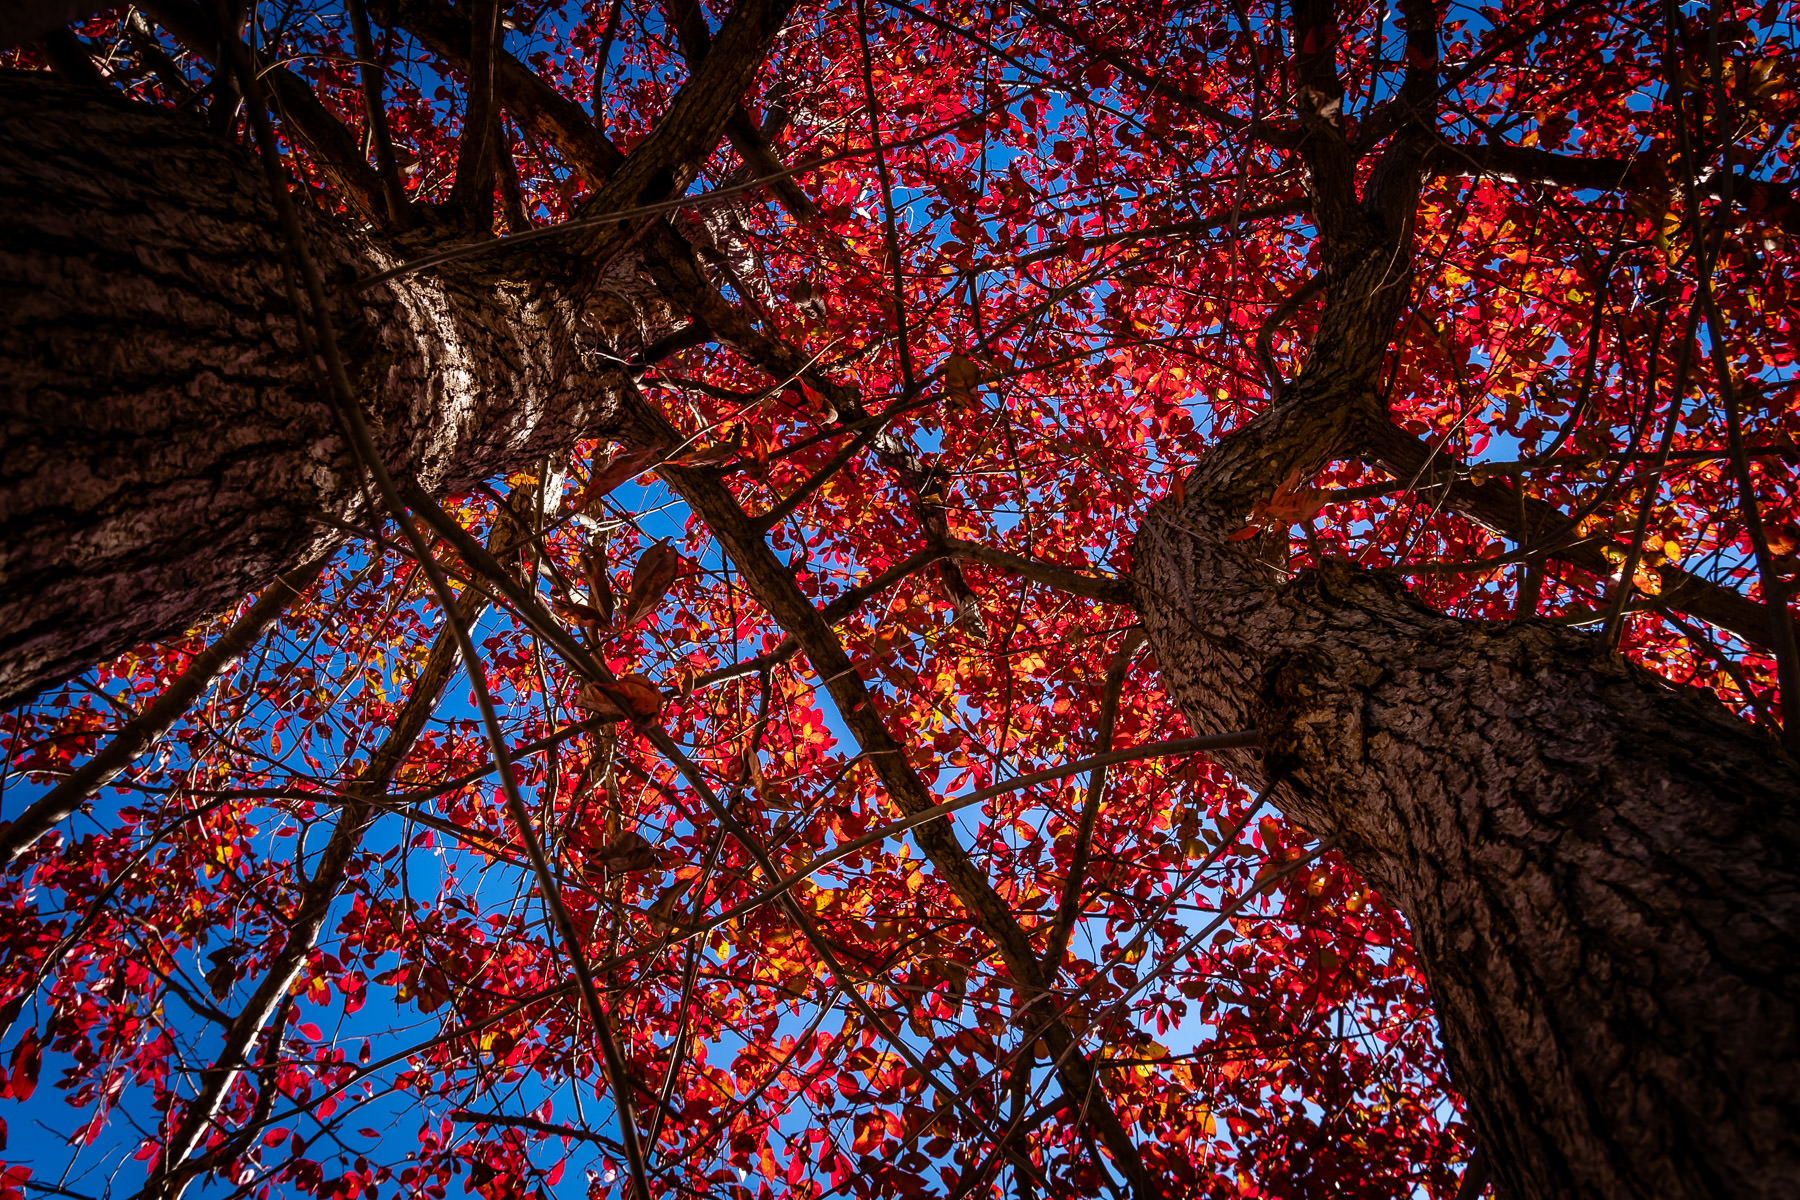 Trees' leaves turn red for autumn in Tyler, Texas.